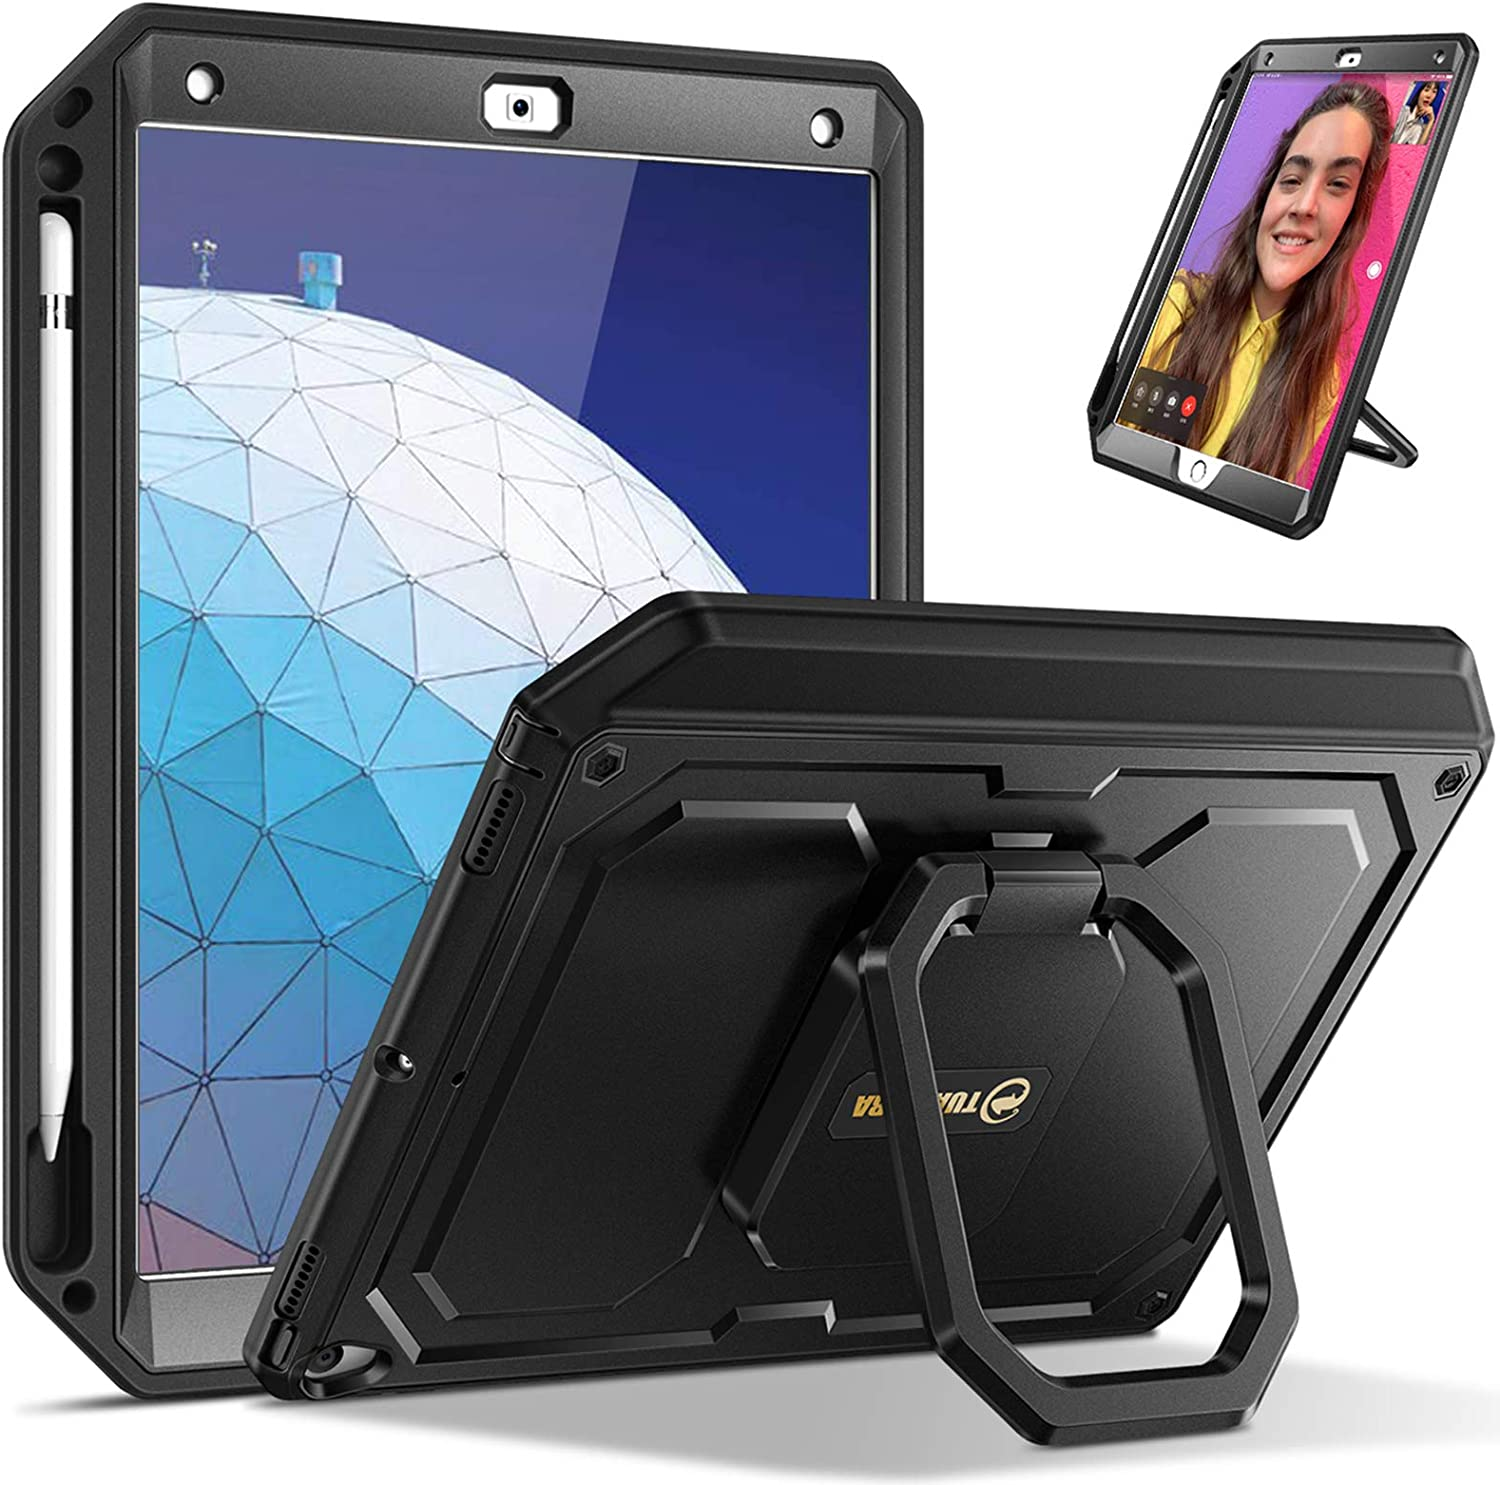 """Fintie Tuatara Magic Ring Case for iPad Air (3rd Gen) 10.5"""" 2019 / iPad Pro 10.5"""" 2017 - 360 Rotating Grip Stand Shockproof Rugged Cover with Built-in Screen Protector, Pencil Holder (Black)"""